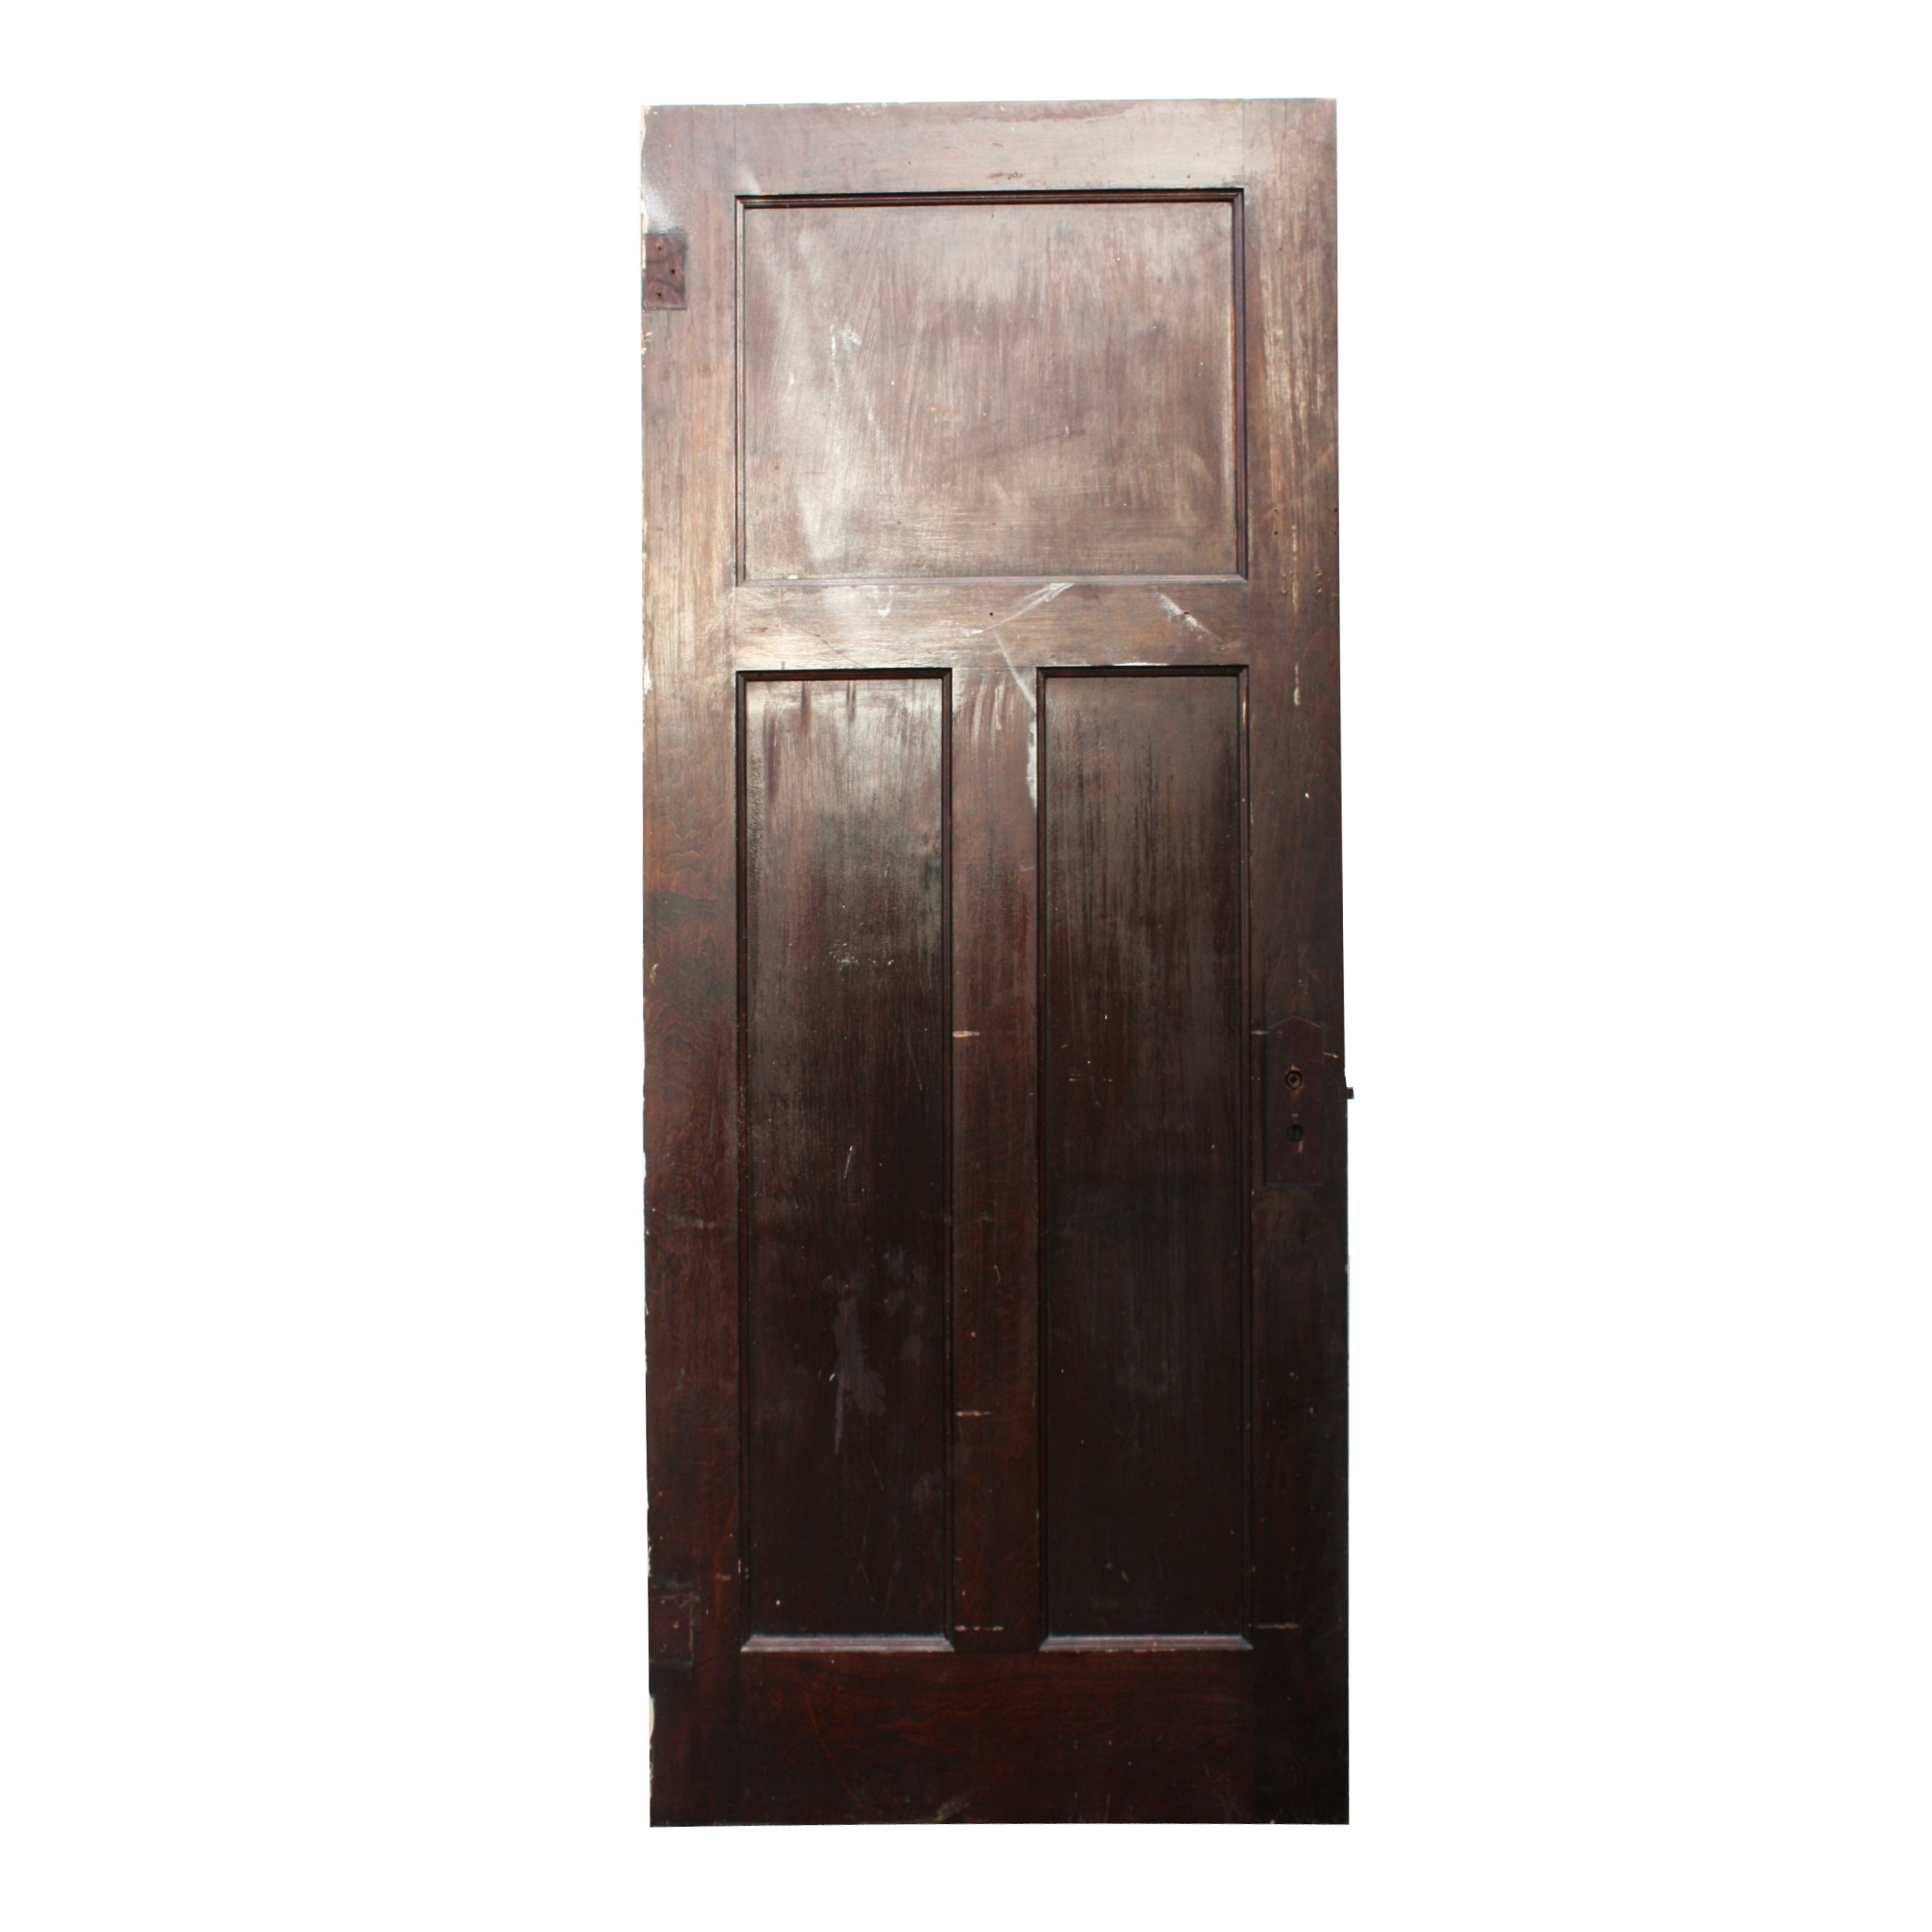 Antique Three Panel Solid Wood Door Stained Finish Nid27